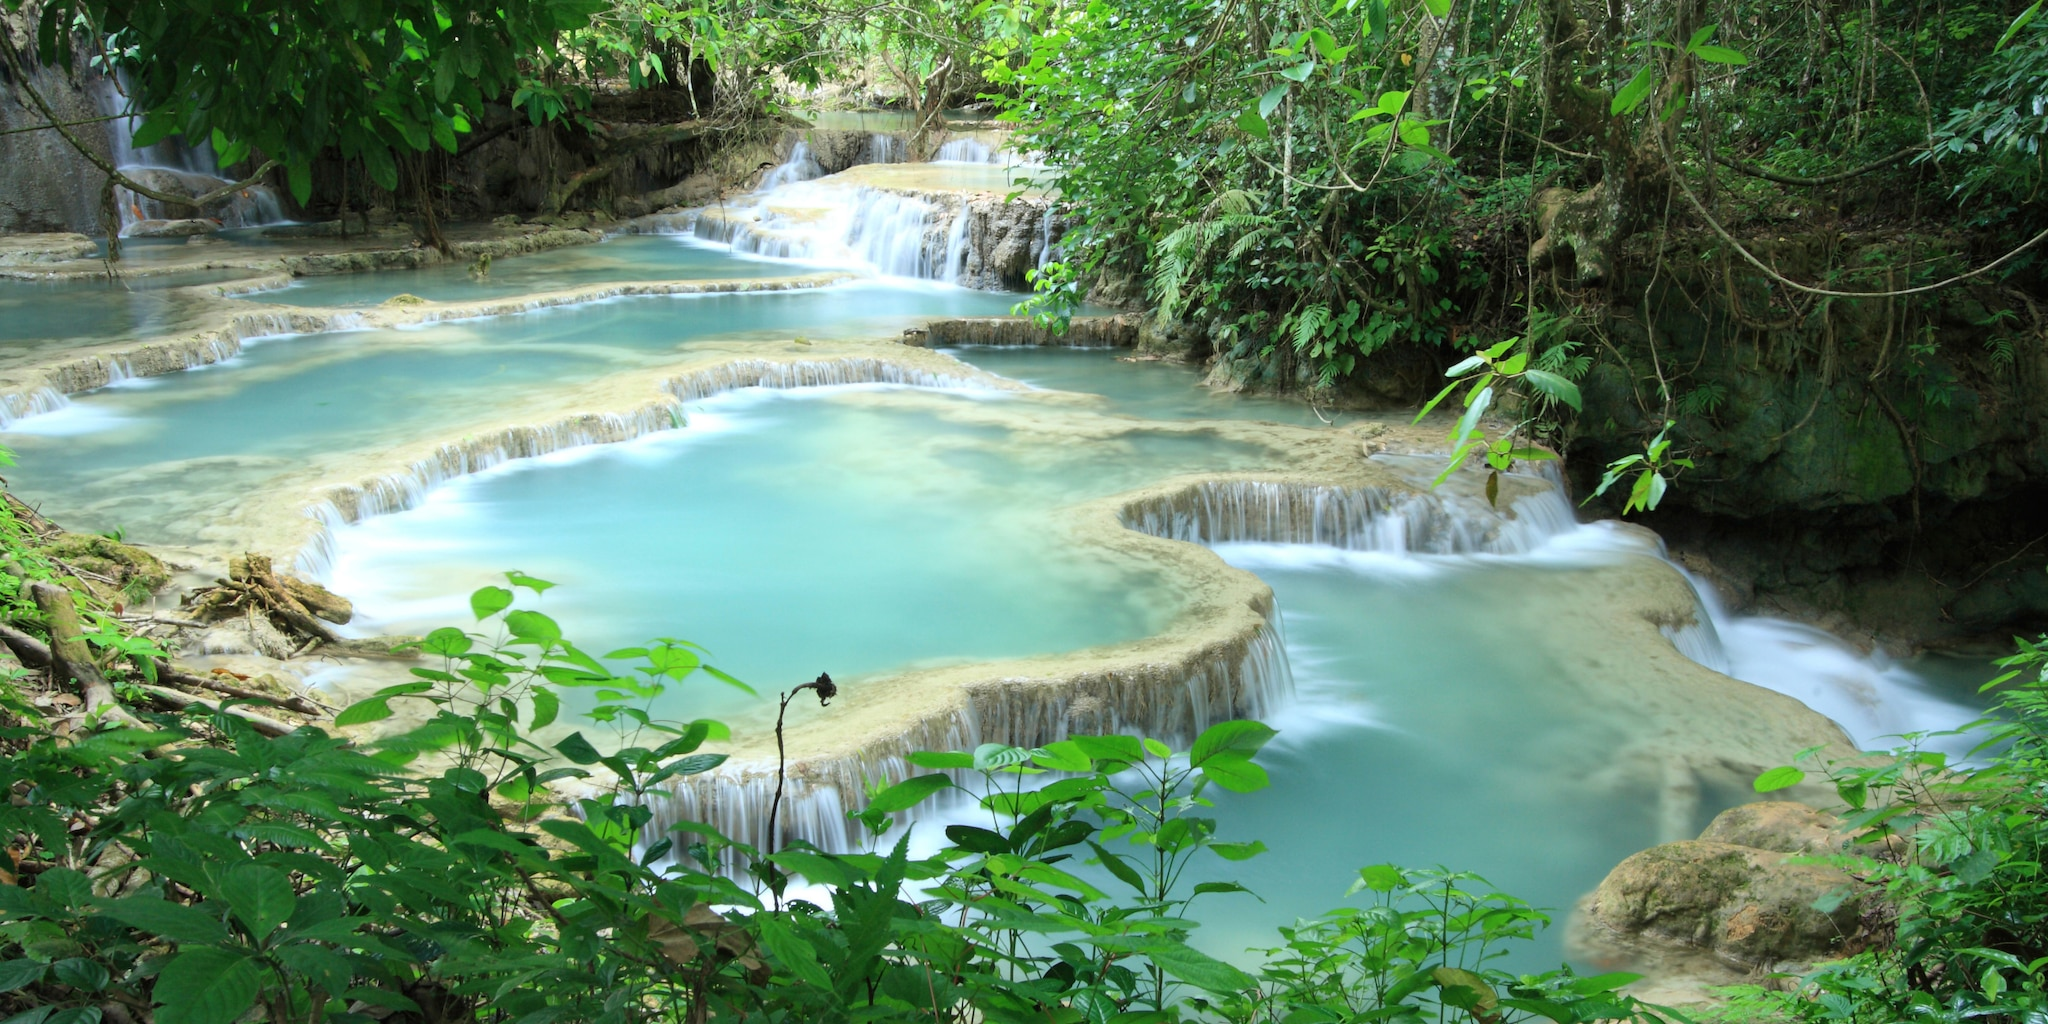 Kuang Si Falls is one stop on the Vietnam tour